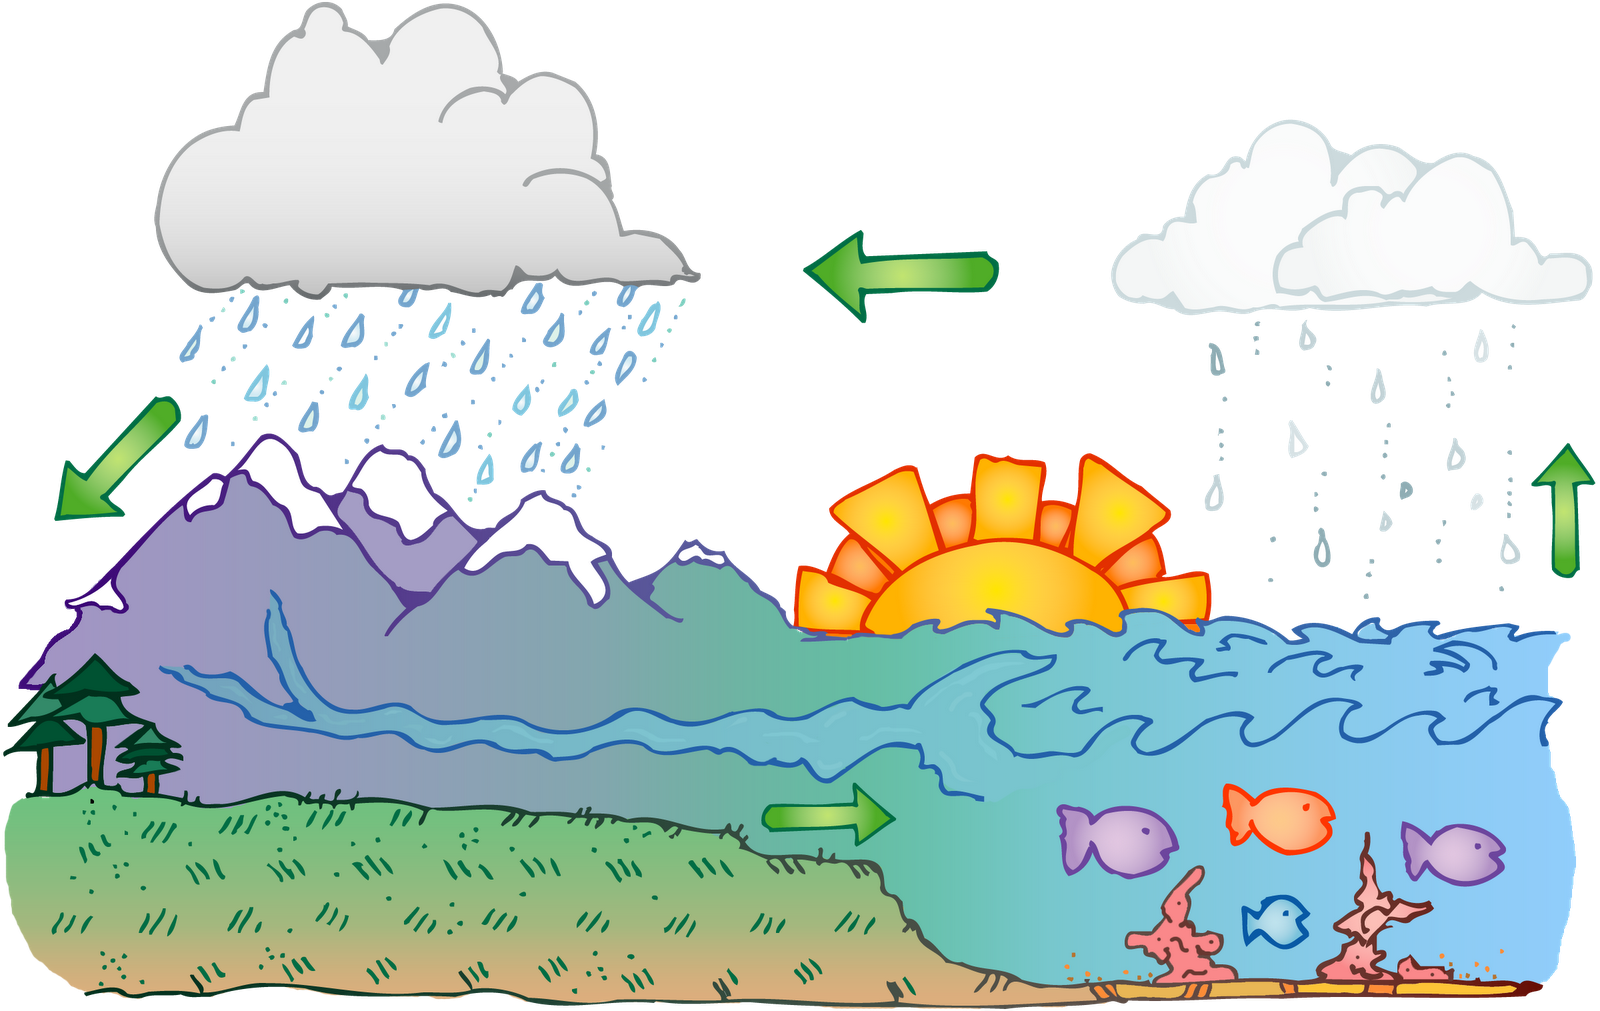 water cycle. Size: 91 Kb From